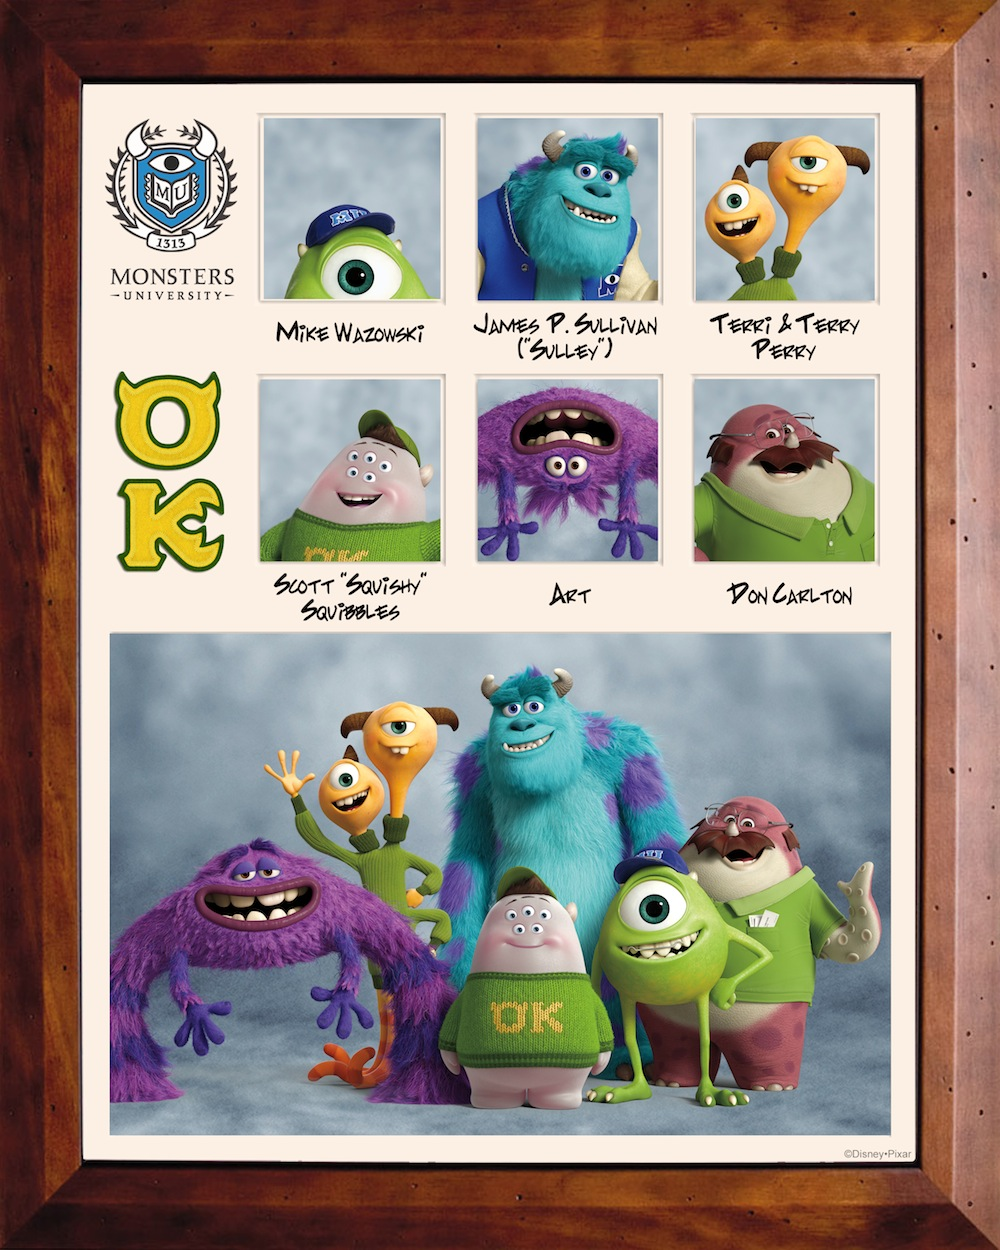 Monsters University Fraternity And Sorority Character Descriptions And Vocal Talent List Pixar Post